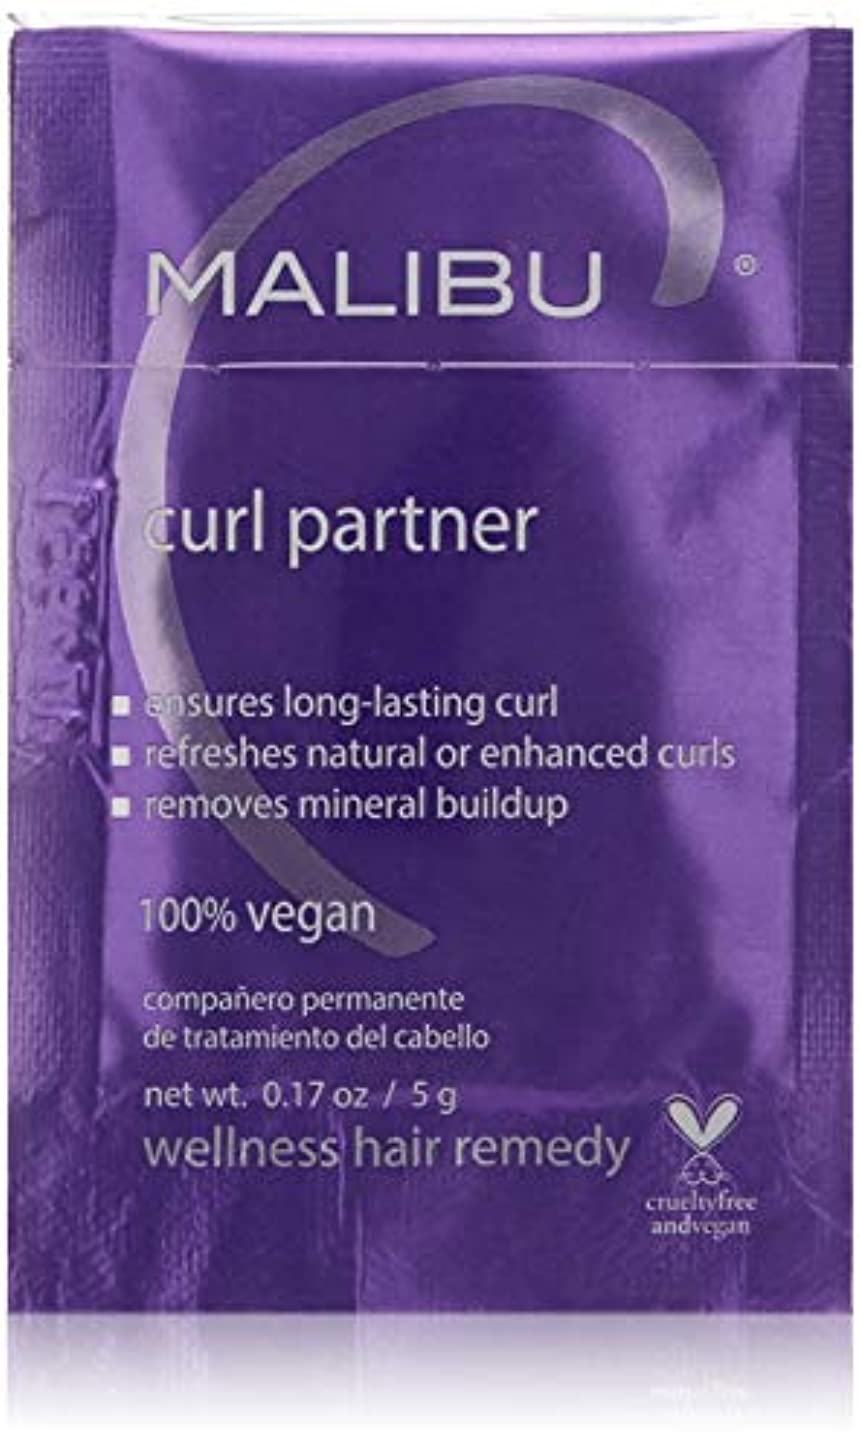 偽造依存うがいMalibu C Curl Partner Wellness Hair Remedy 12x5g/0.17oz並行輸入品